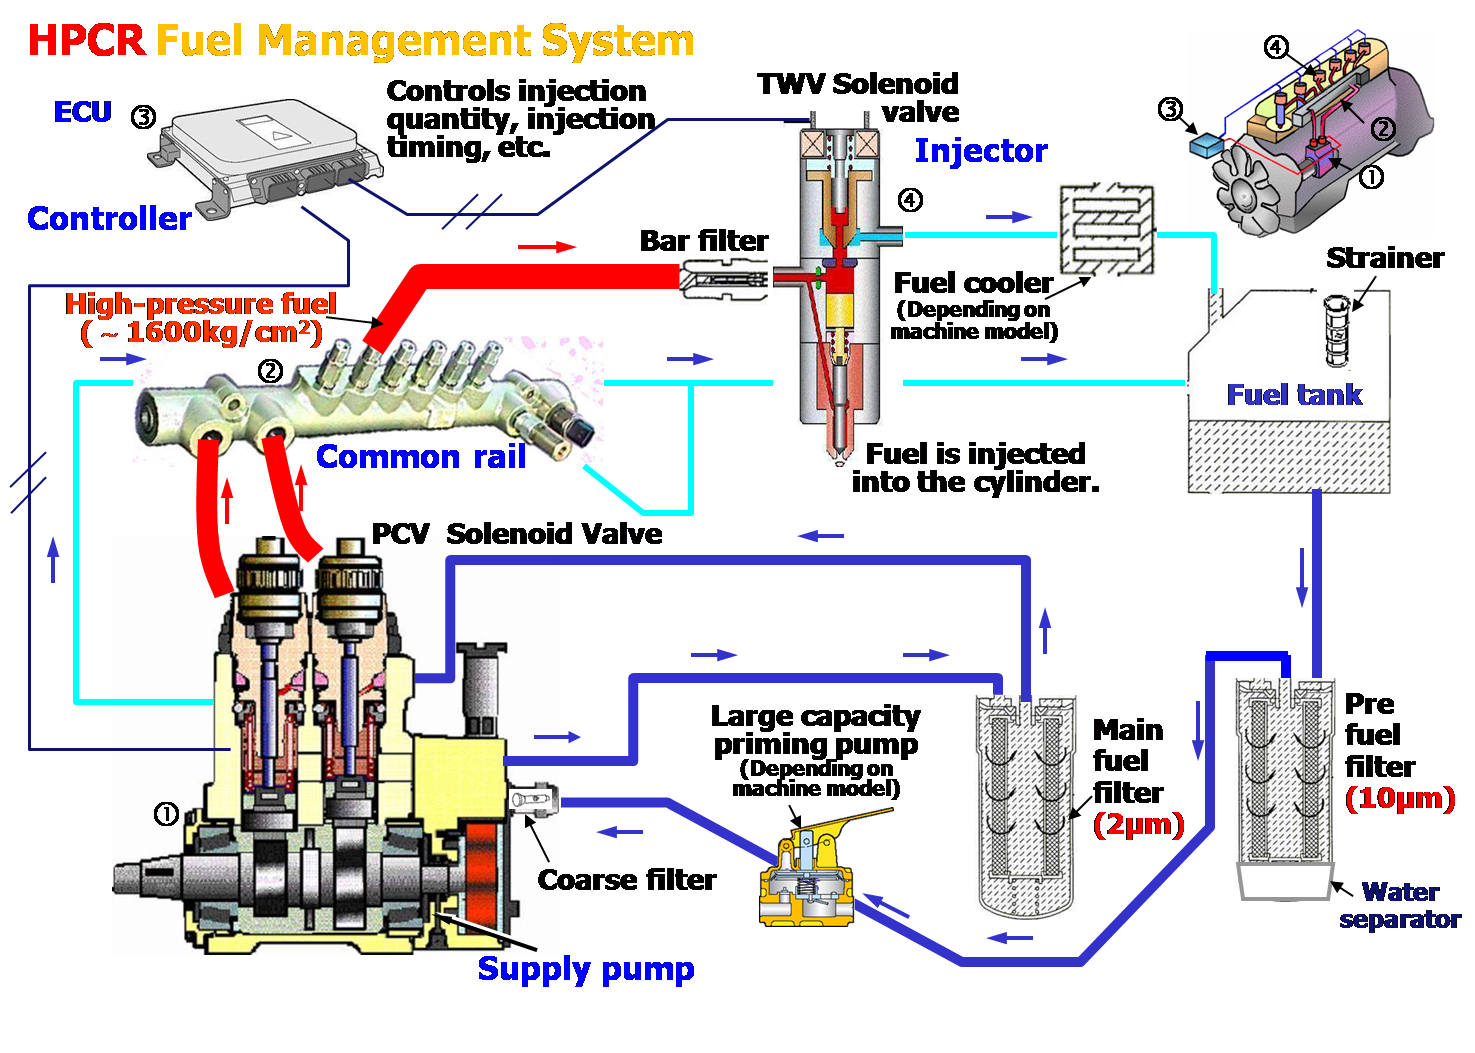 HPCR+system cat c15 engine wiring diagram cat 3406 engine wiring diagram cat c15 acert wiring diagram at bayanpartner.co